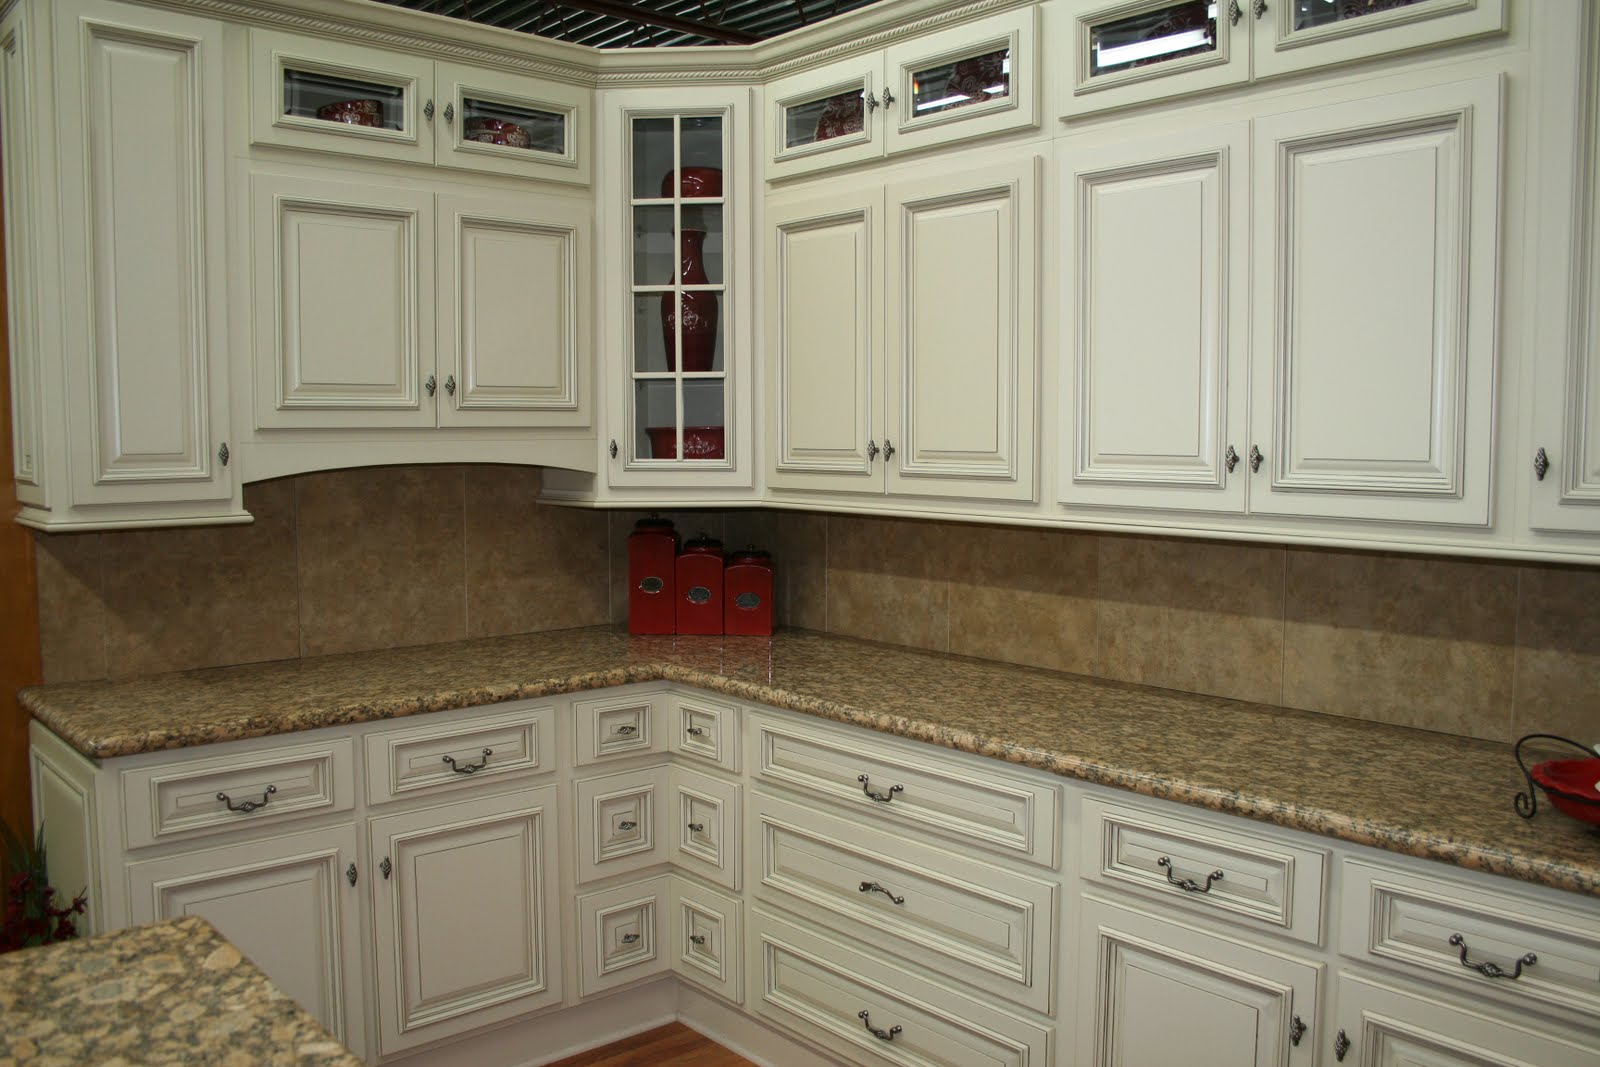 Refinish kitchen cabinets antique white roselawnlutheran - Refinish old kitchen cabinets ...